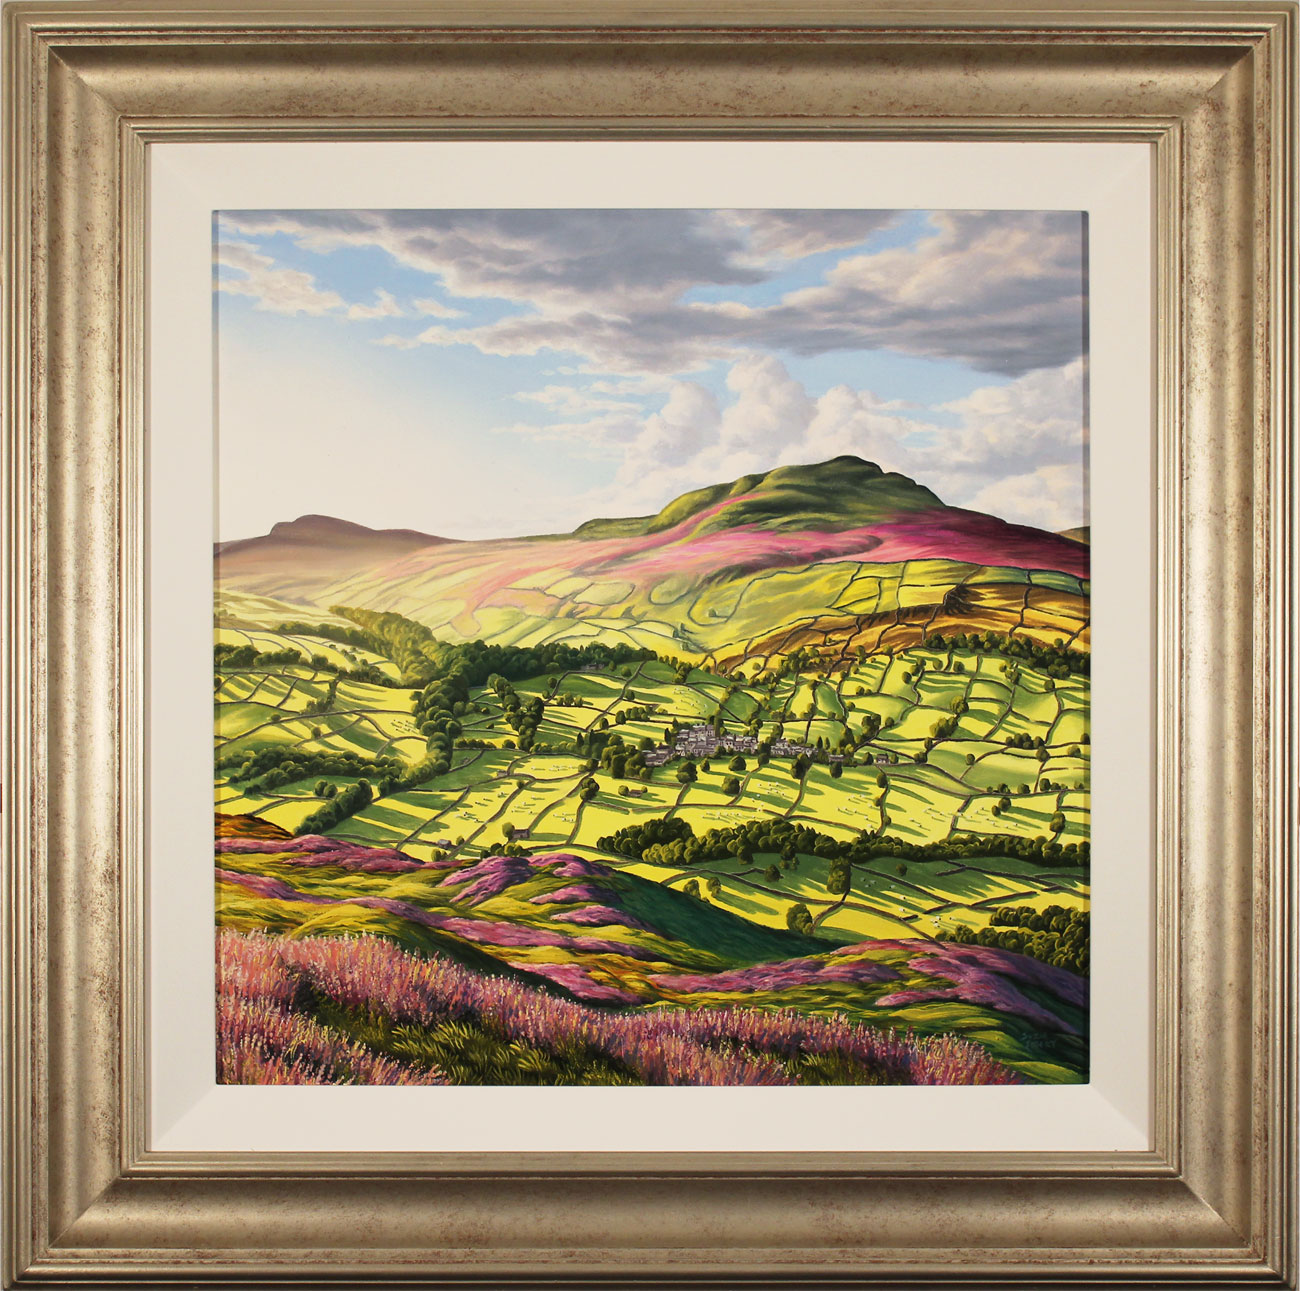 Suzie Emery, Original acrylic painting on board, Yorkshire Glory. Click to enlarge